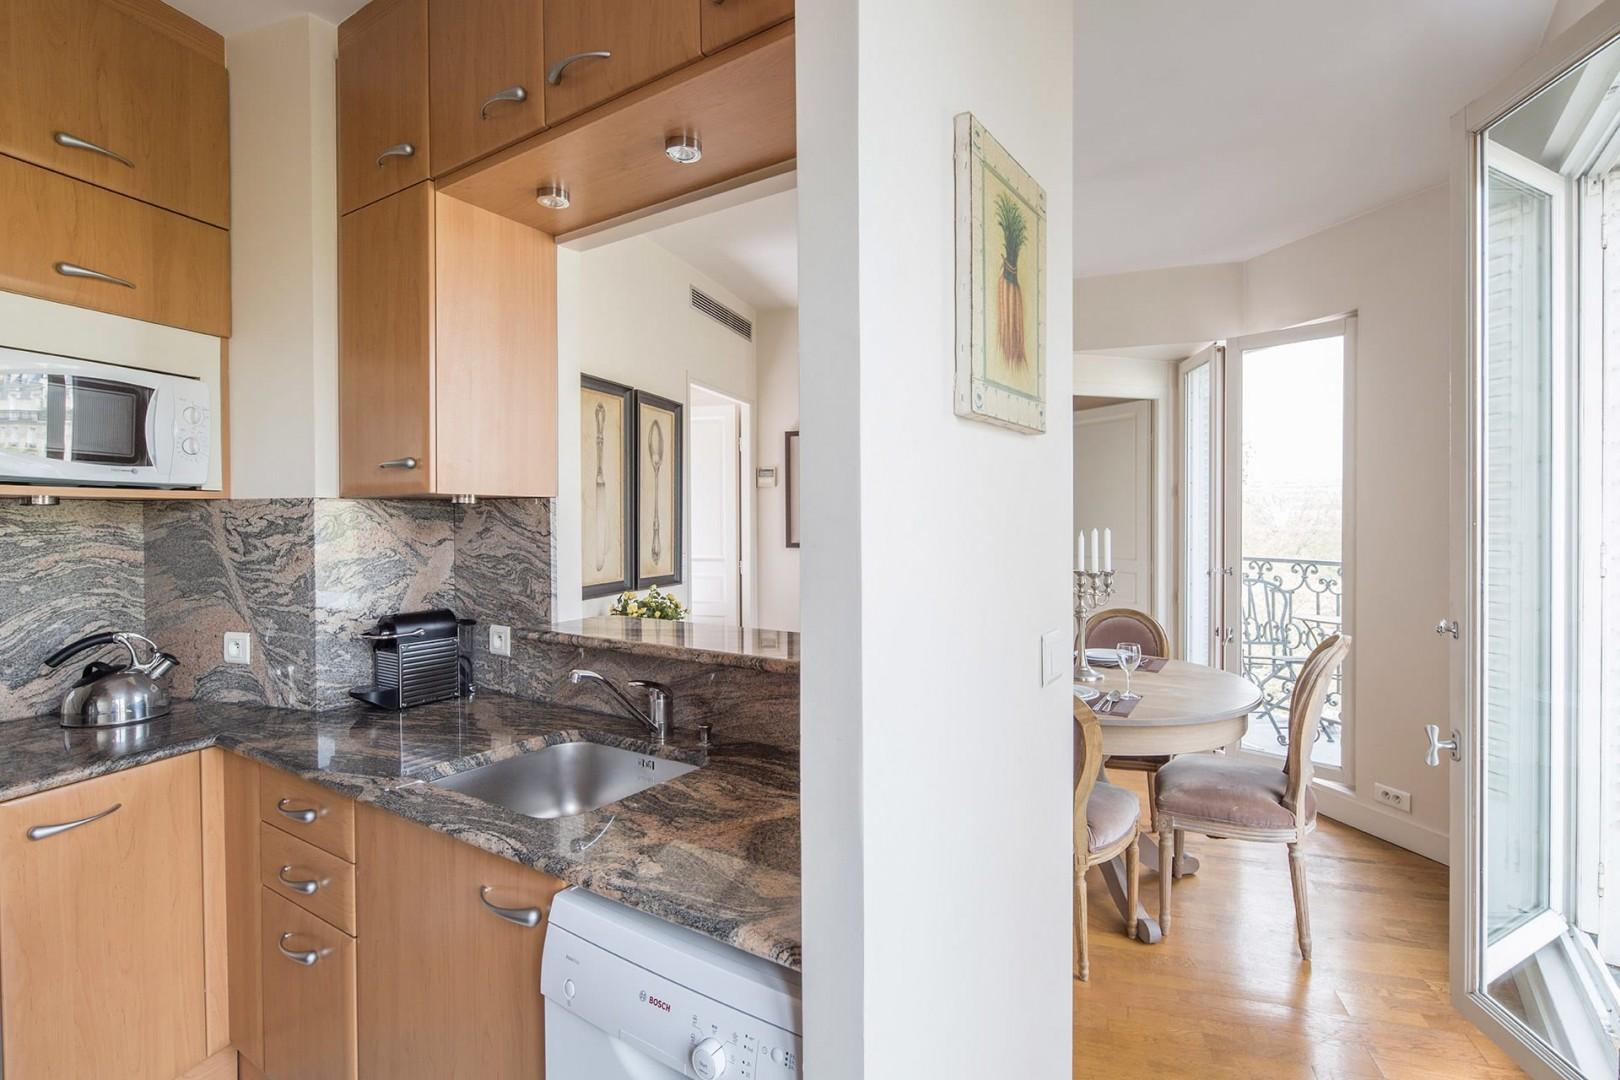 The kitchen is conveniently located next to the dining area, perfect for entertaining.